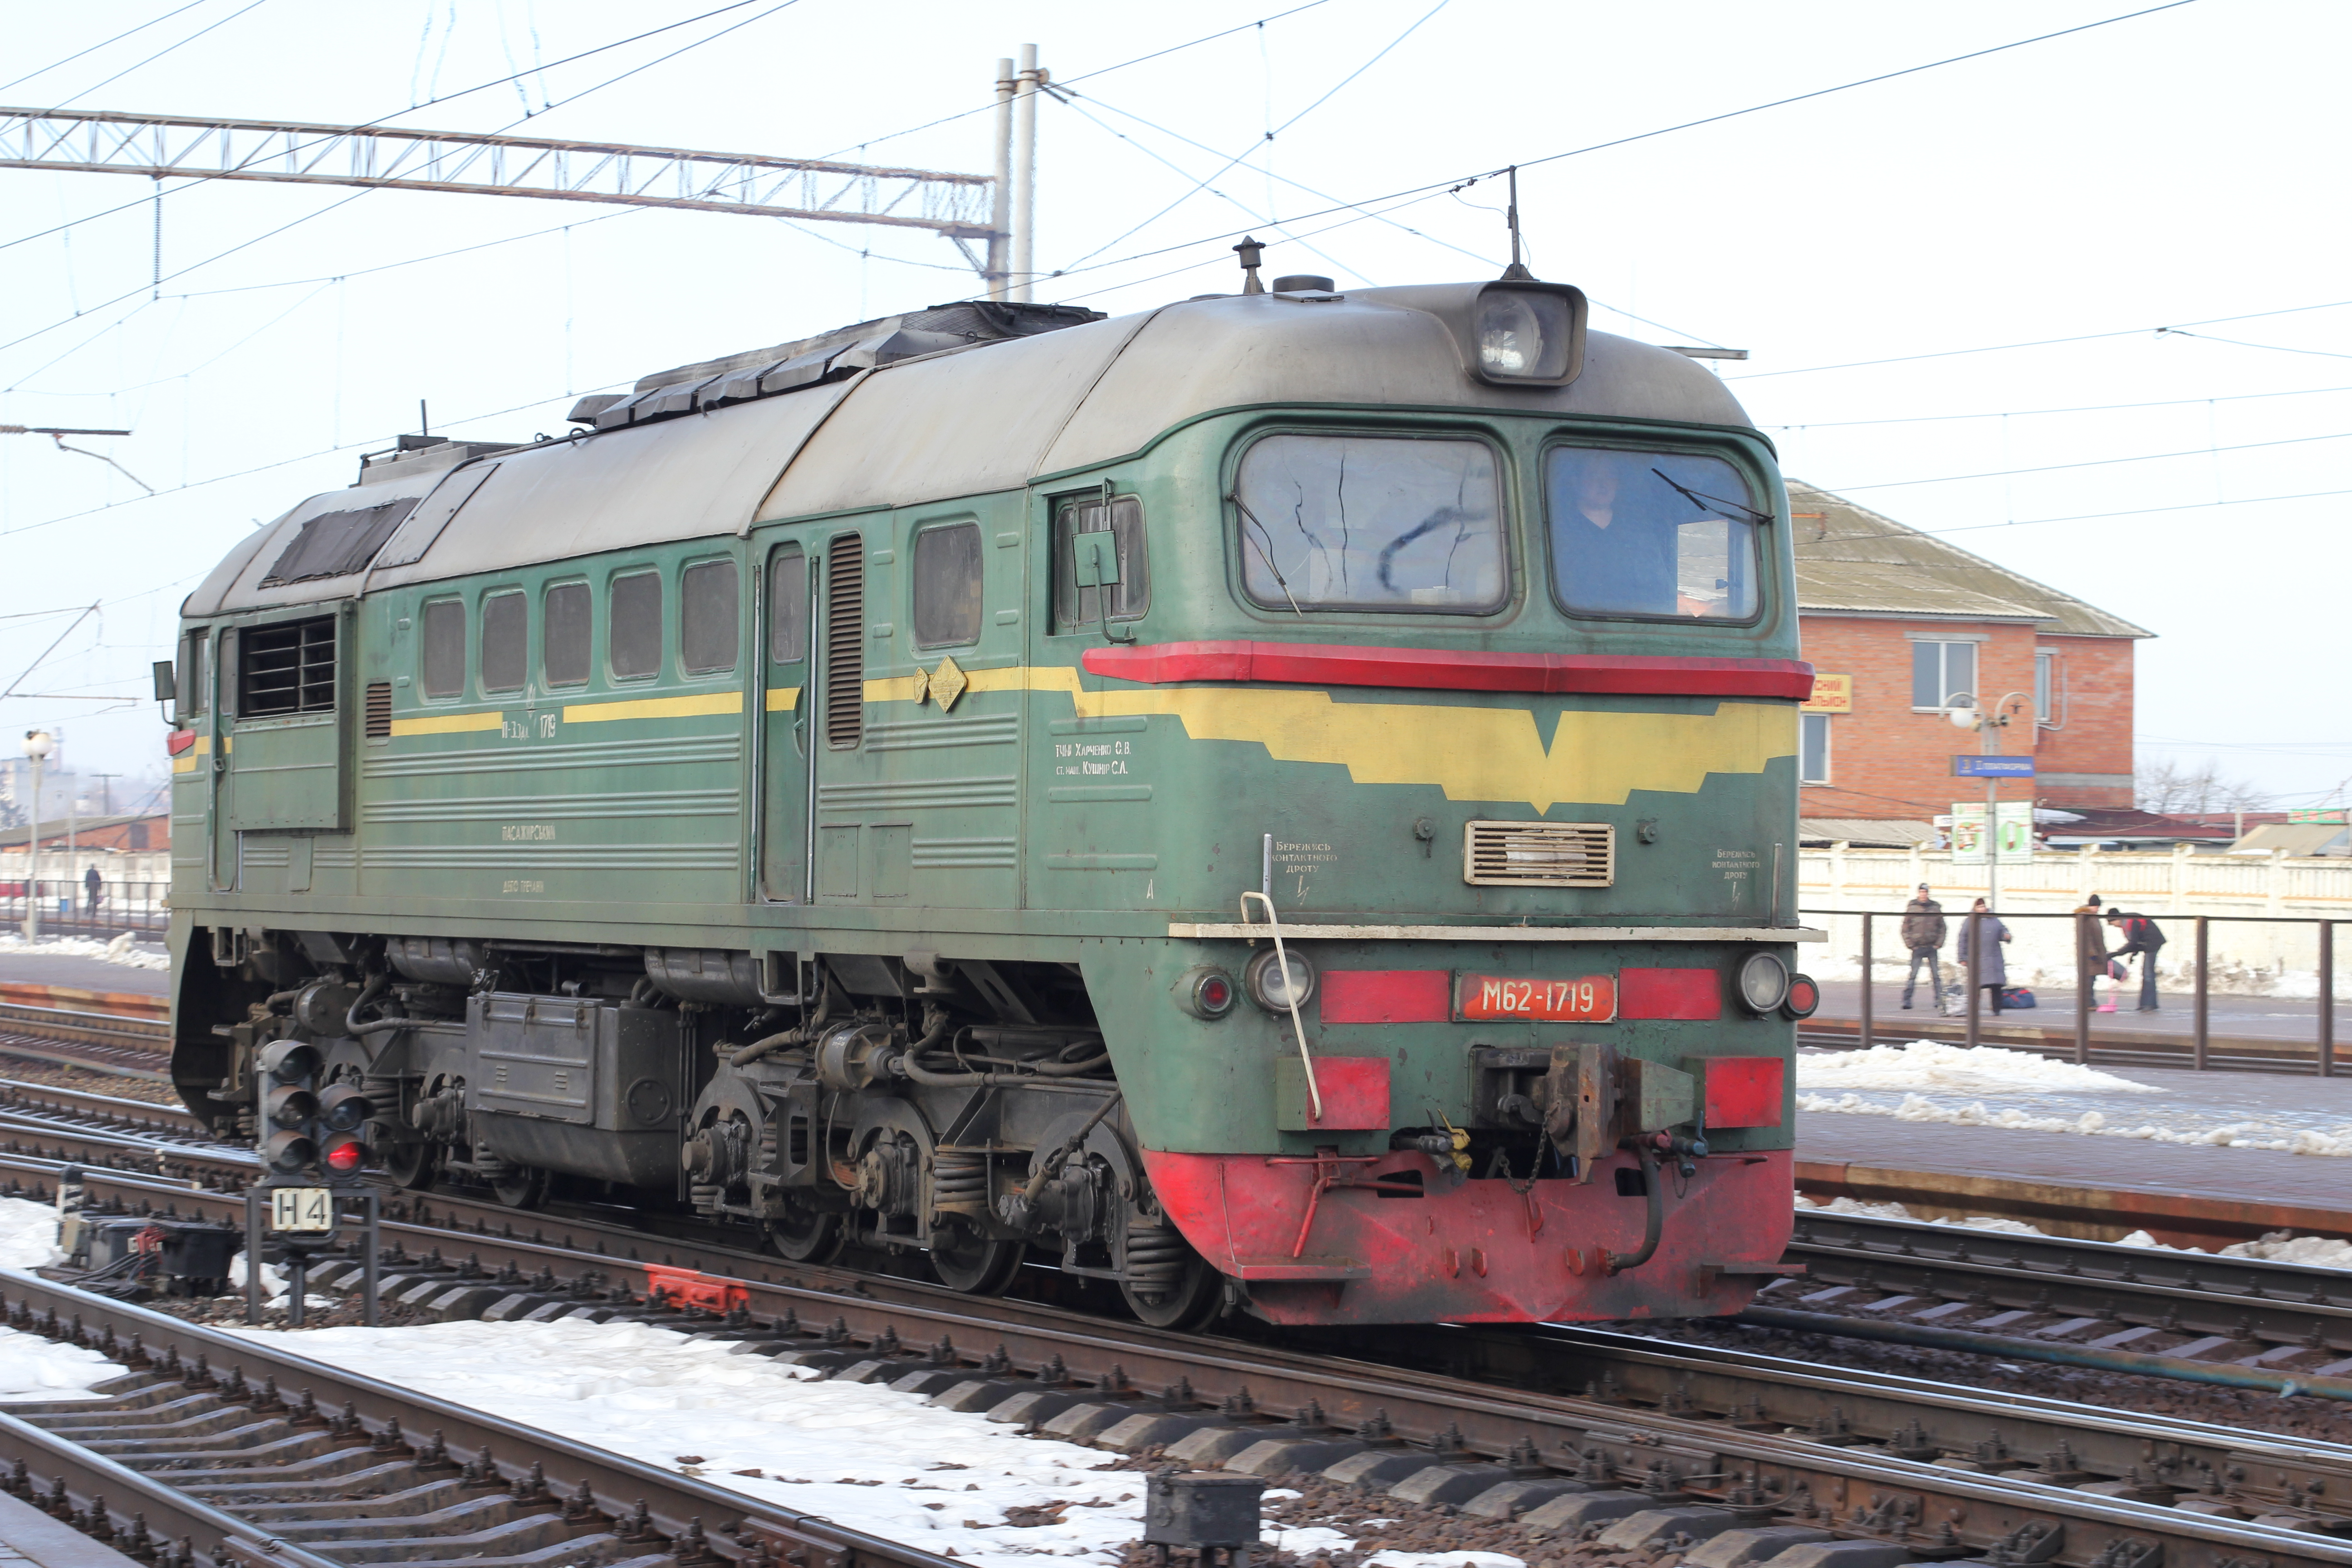 File:Locomotive M62-1719 2013 G1.jpg